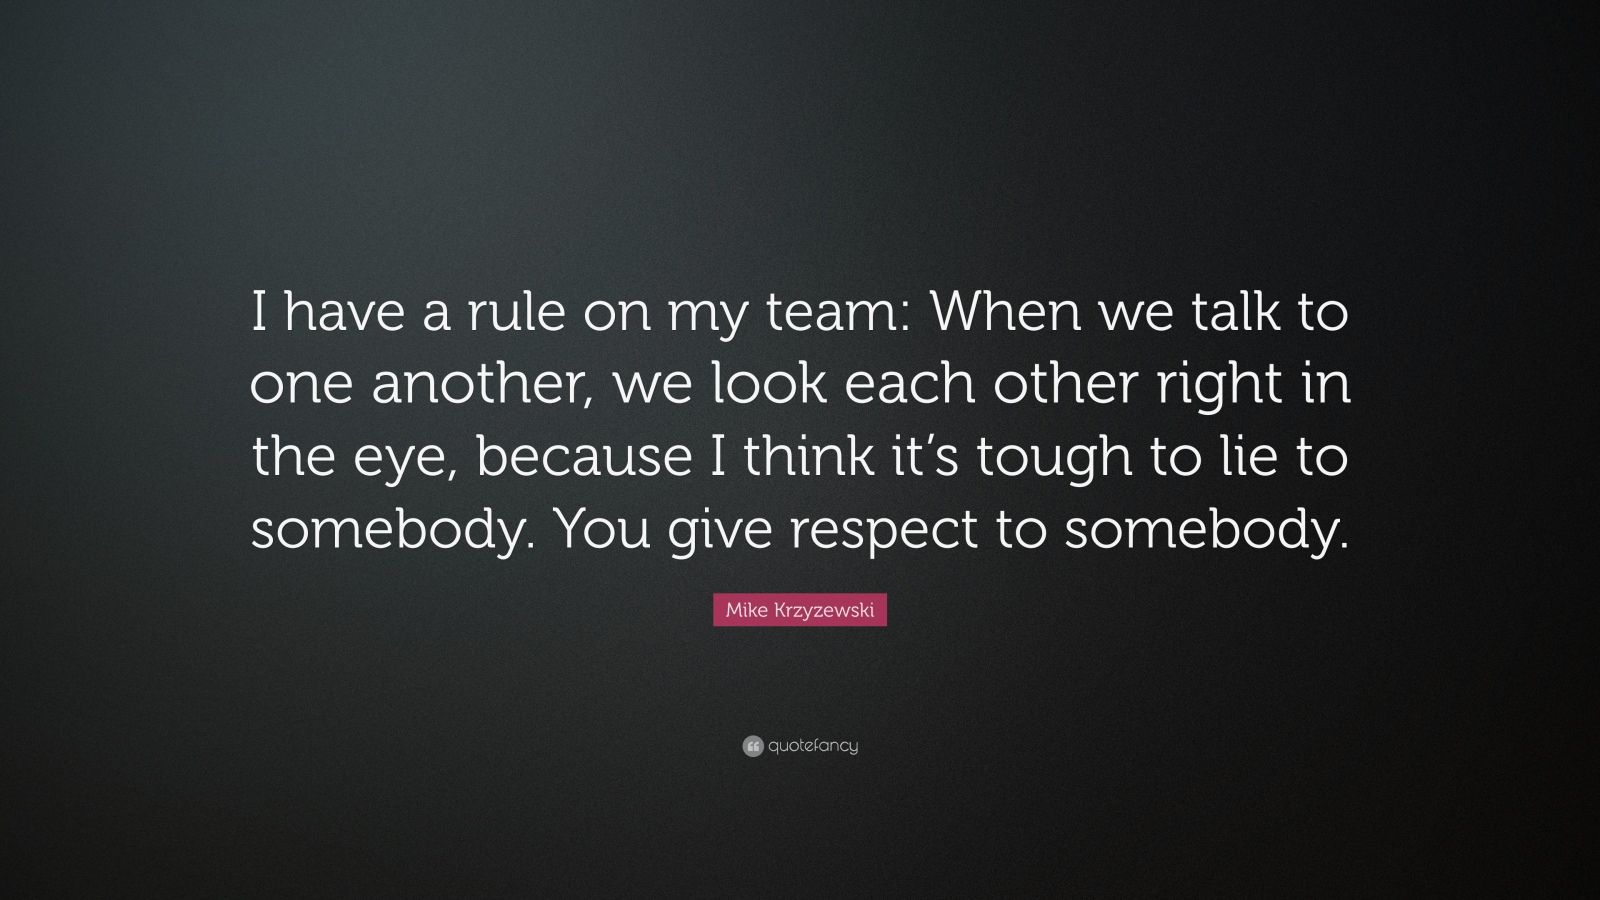 """Mike Krzyzewski Quote: """"I have a rule on my team: When we talk to one another, we look each other right in the eye, because I think it's tough to lie to somebody. You give respect to somebody."""""""